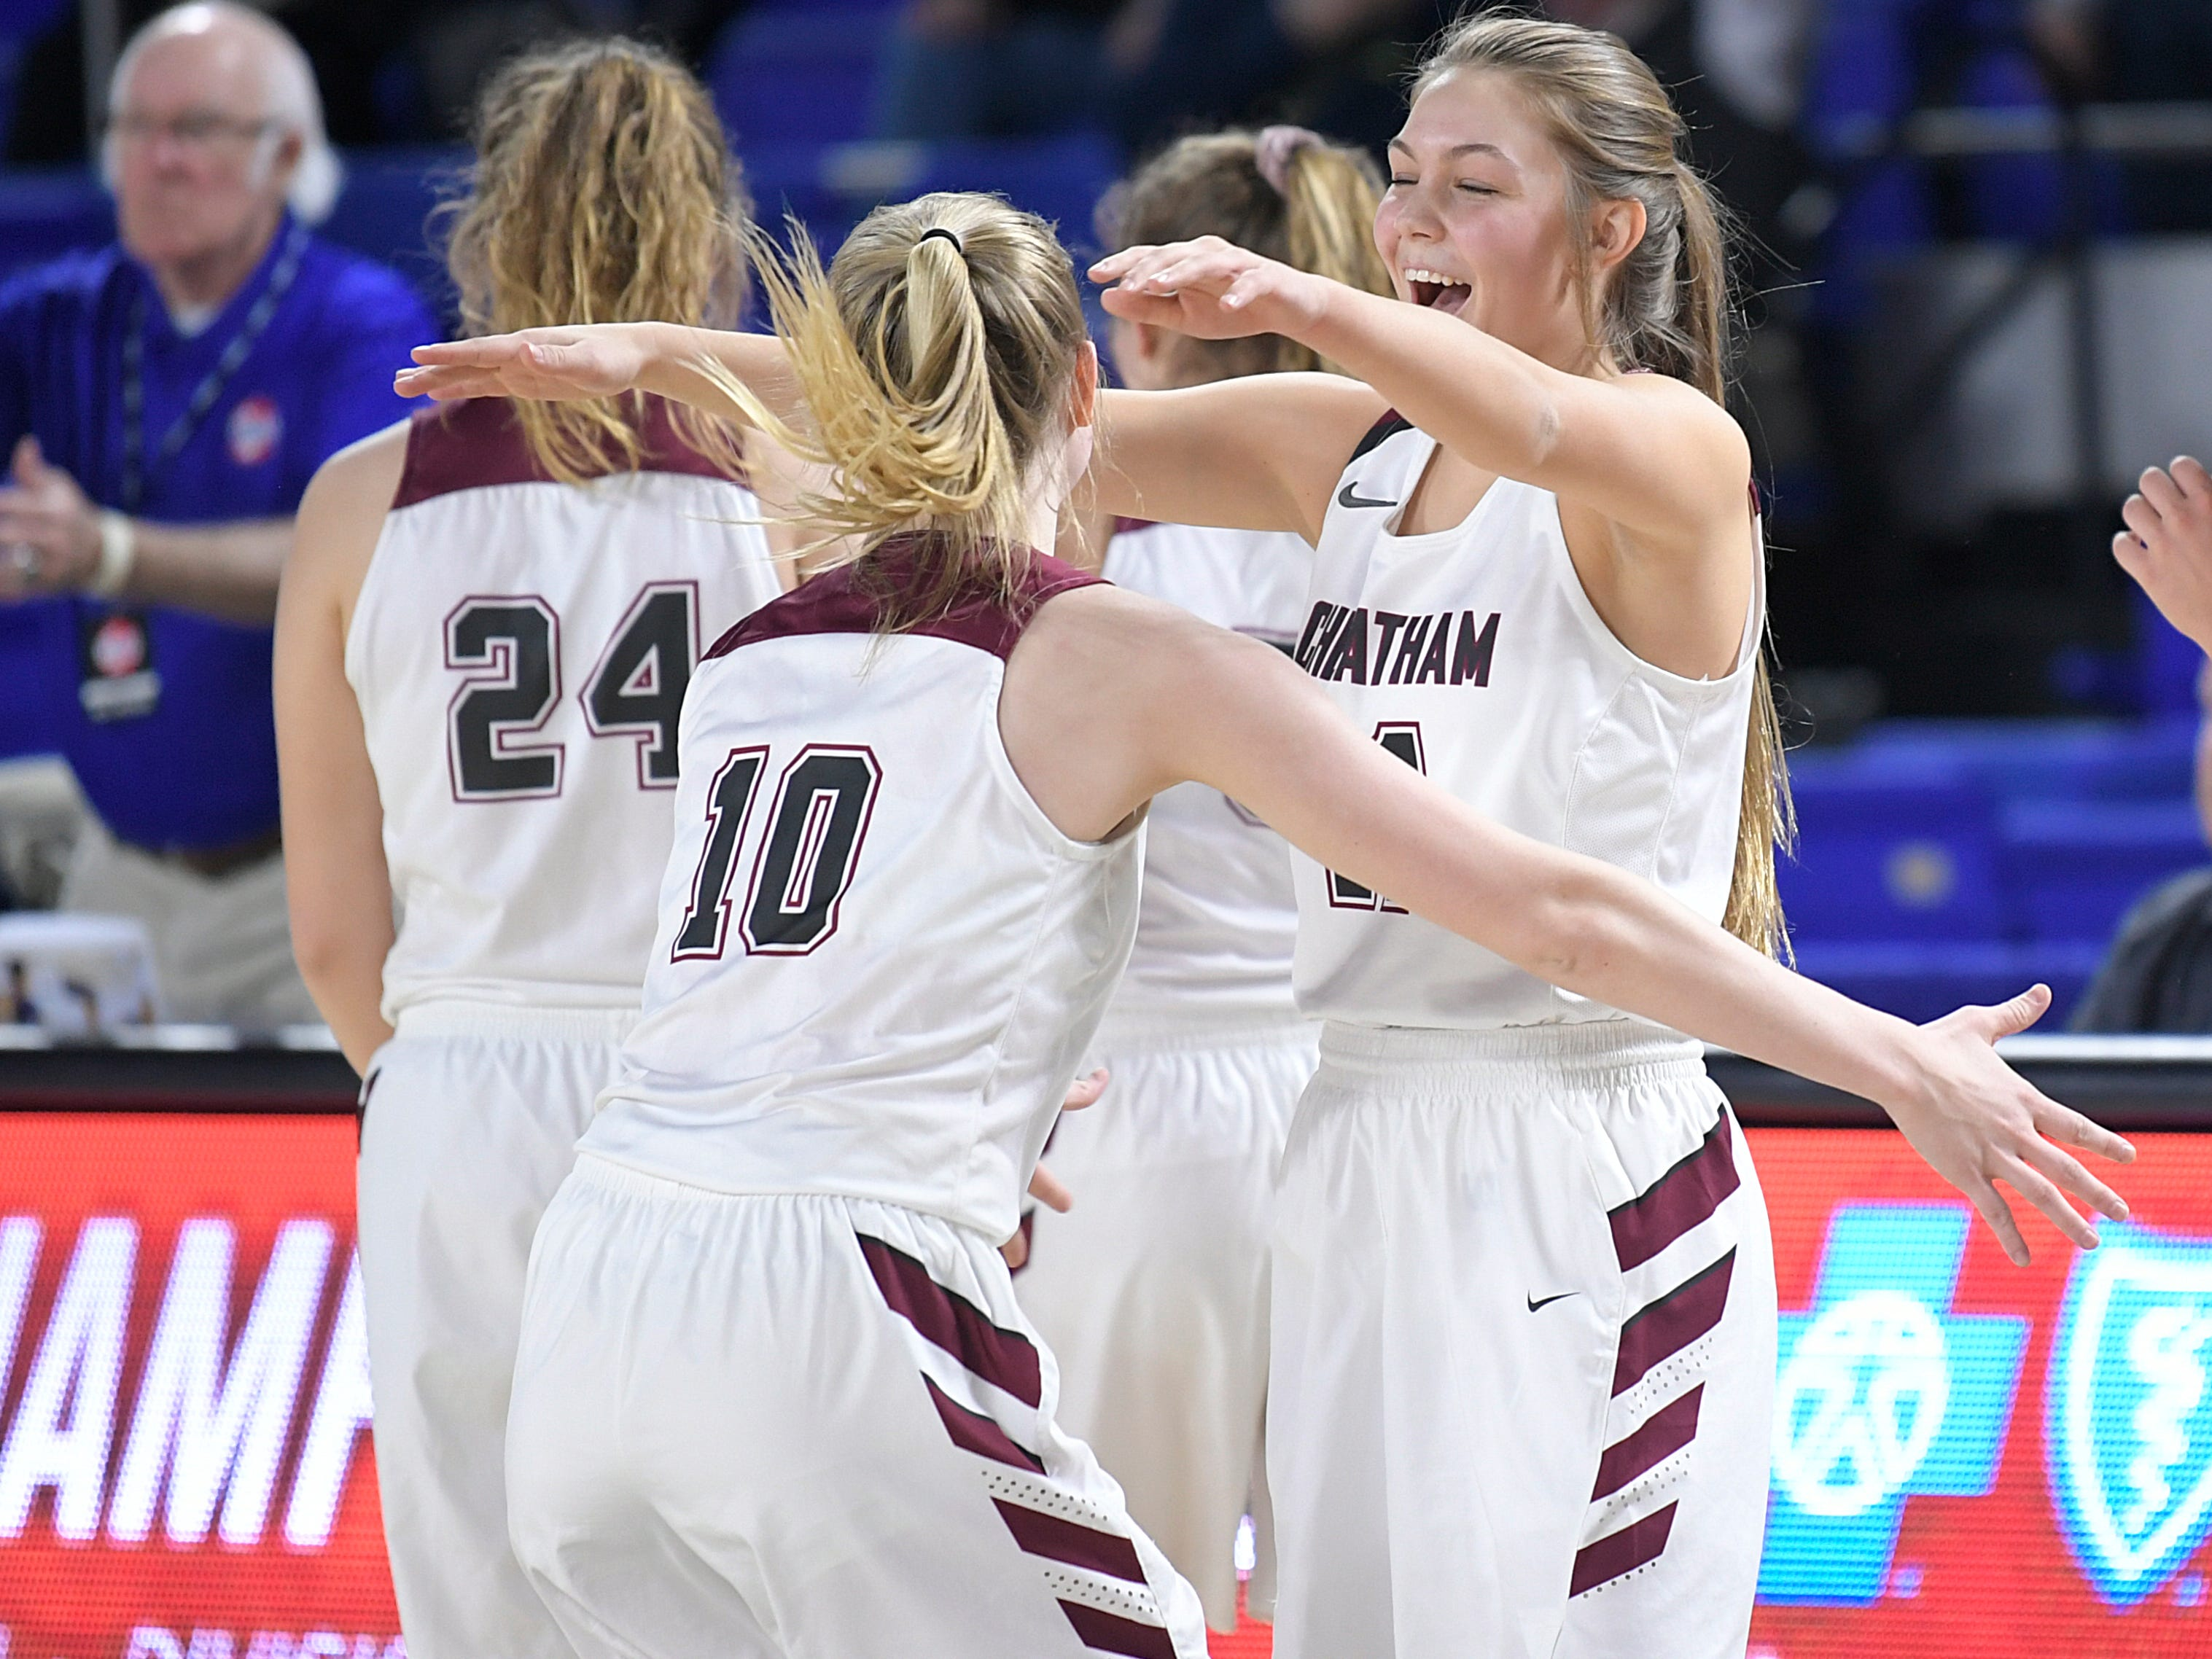 Cheatham County players celebrate after beating Grainger during the quarter finals of TSSAA BlueCross Class AA girls basketball championship at MTSU's Murphy Center in Murfreesboro on Wednesday, March 6, 2019.